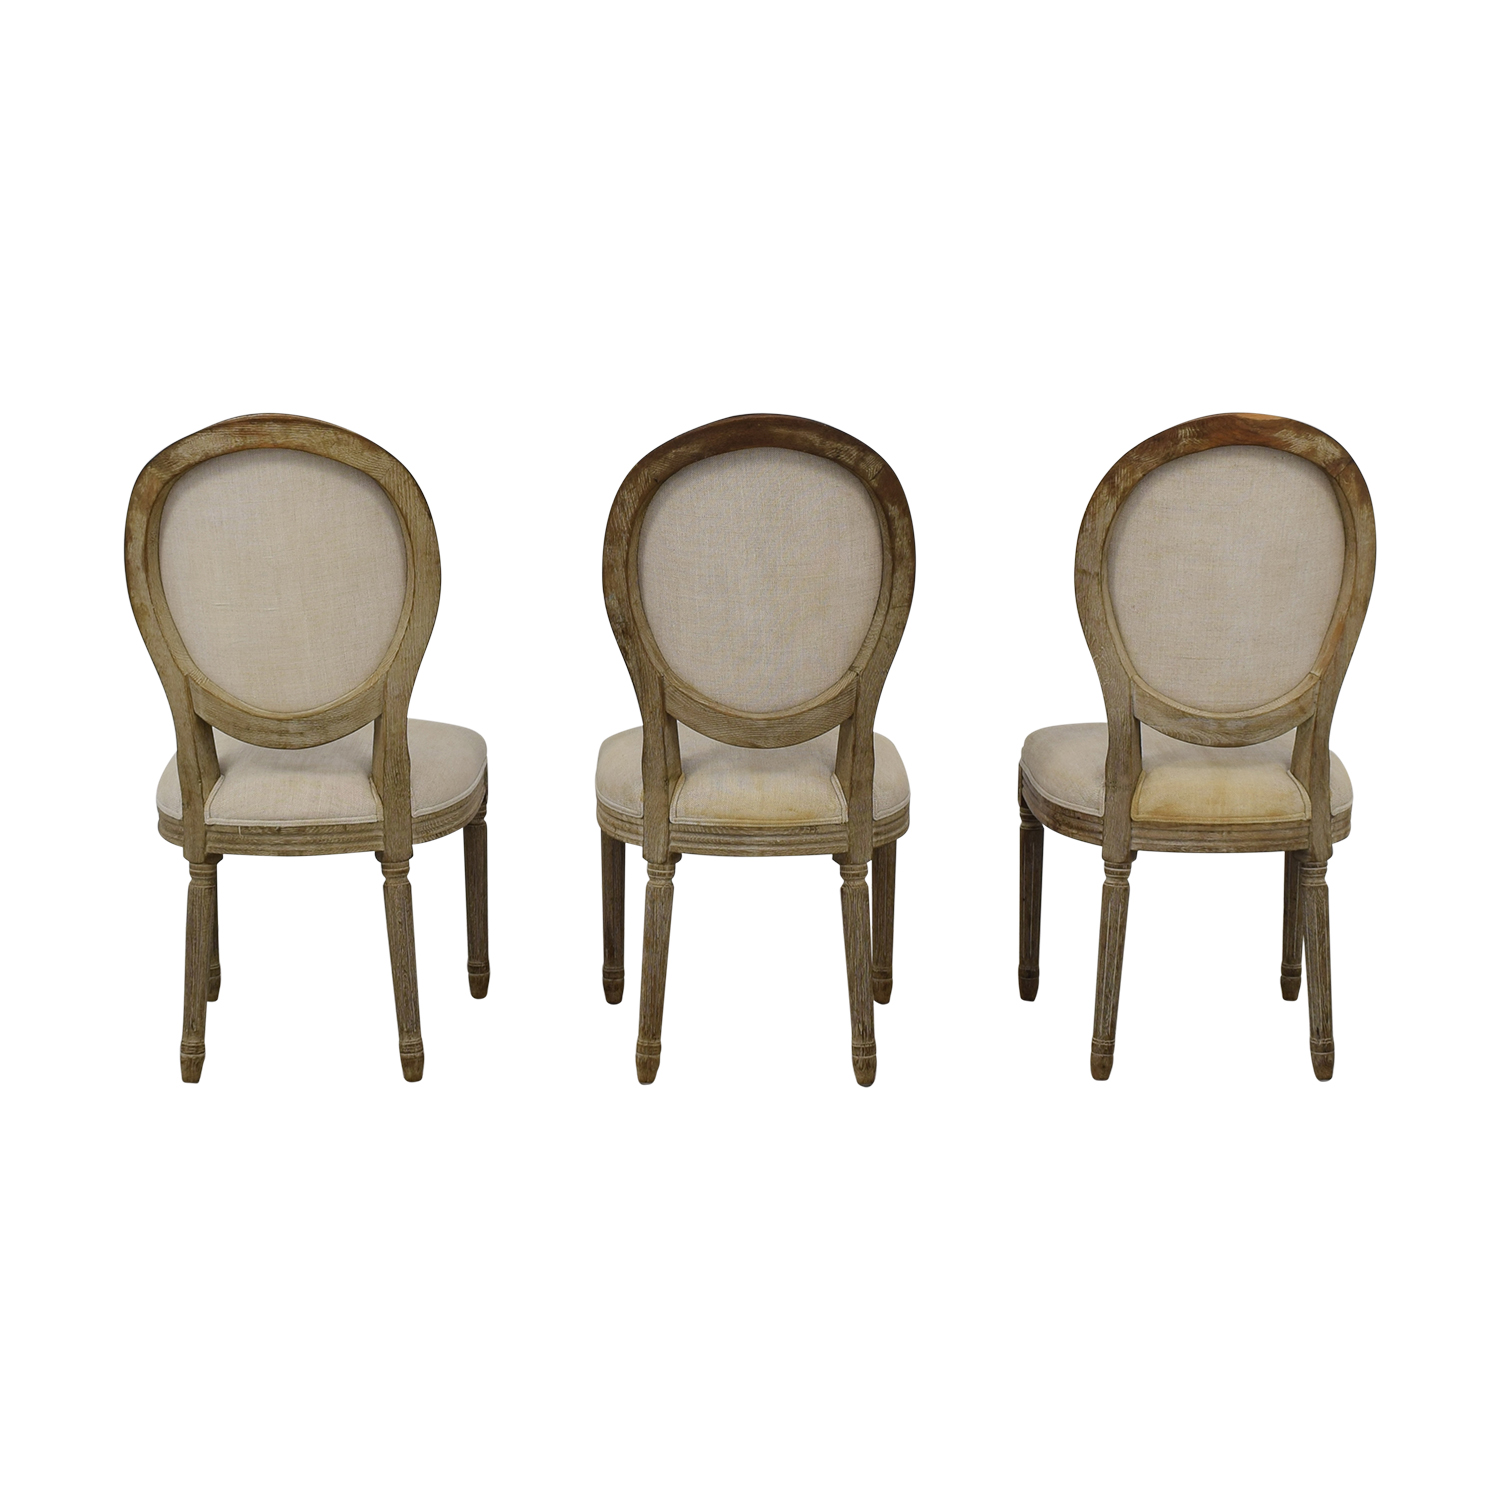 buy Restoration Hardware Restoration Hardware Vintage French Round Chair online